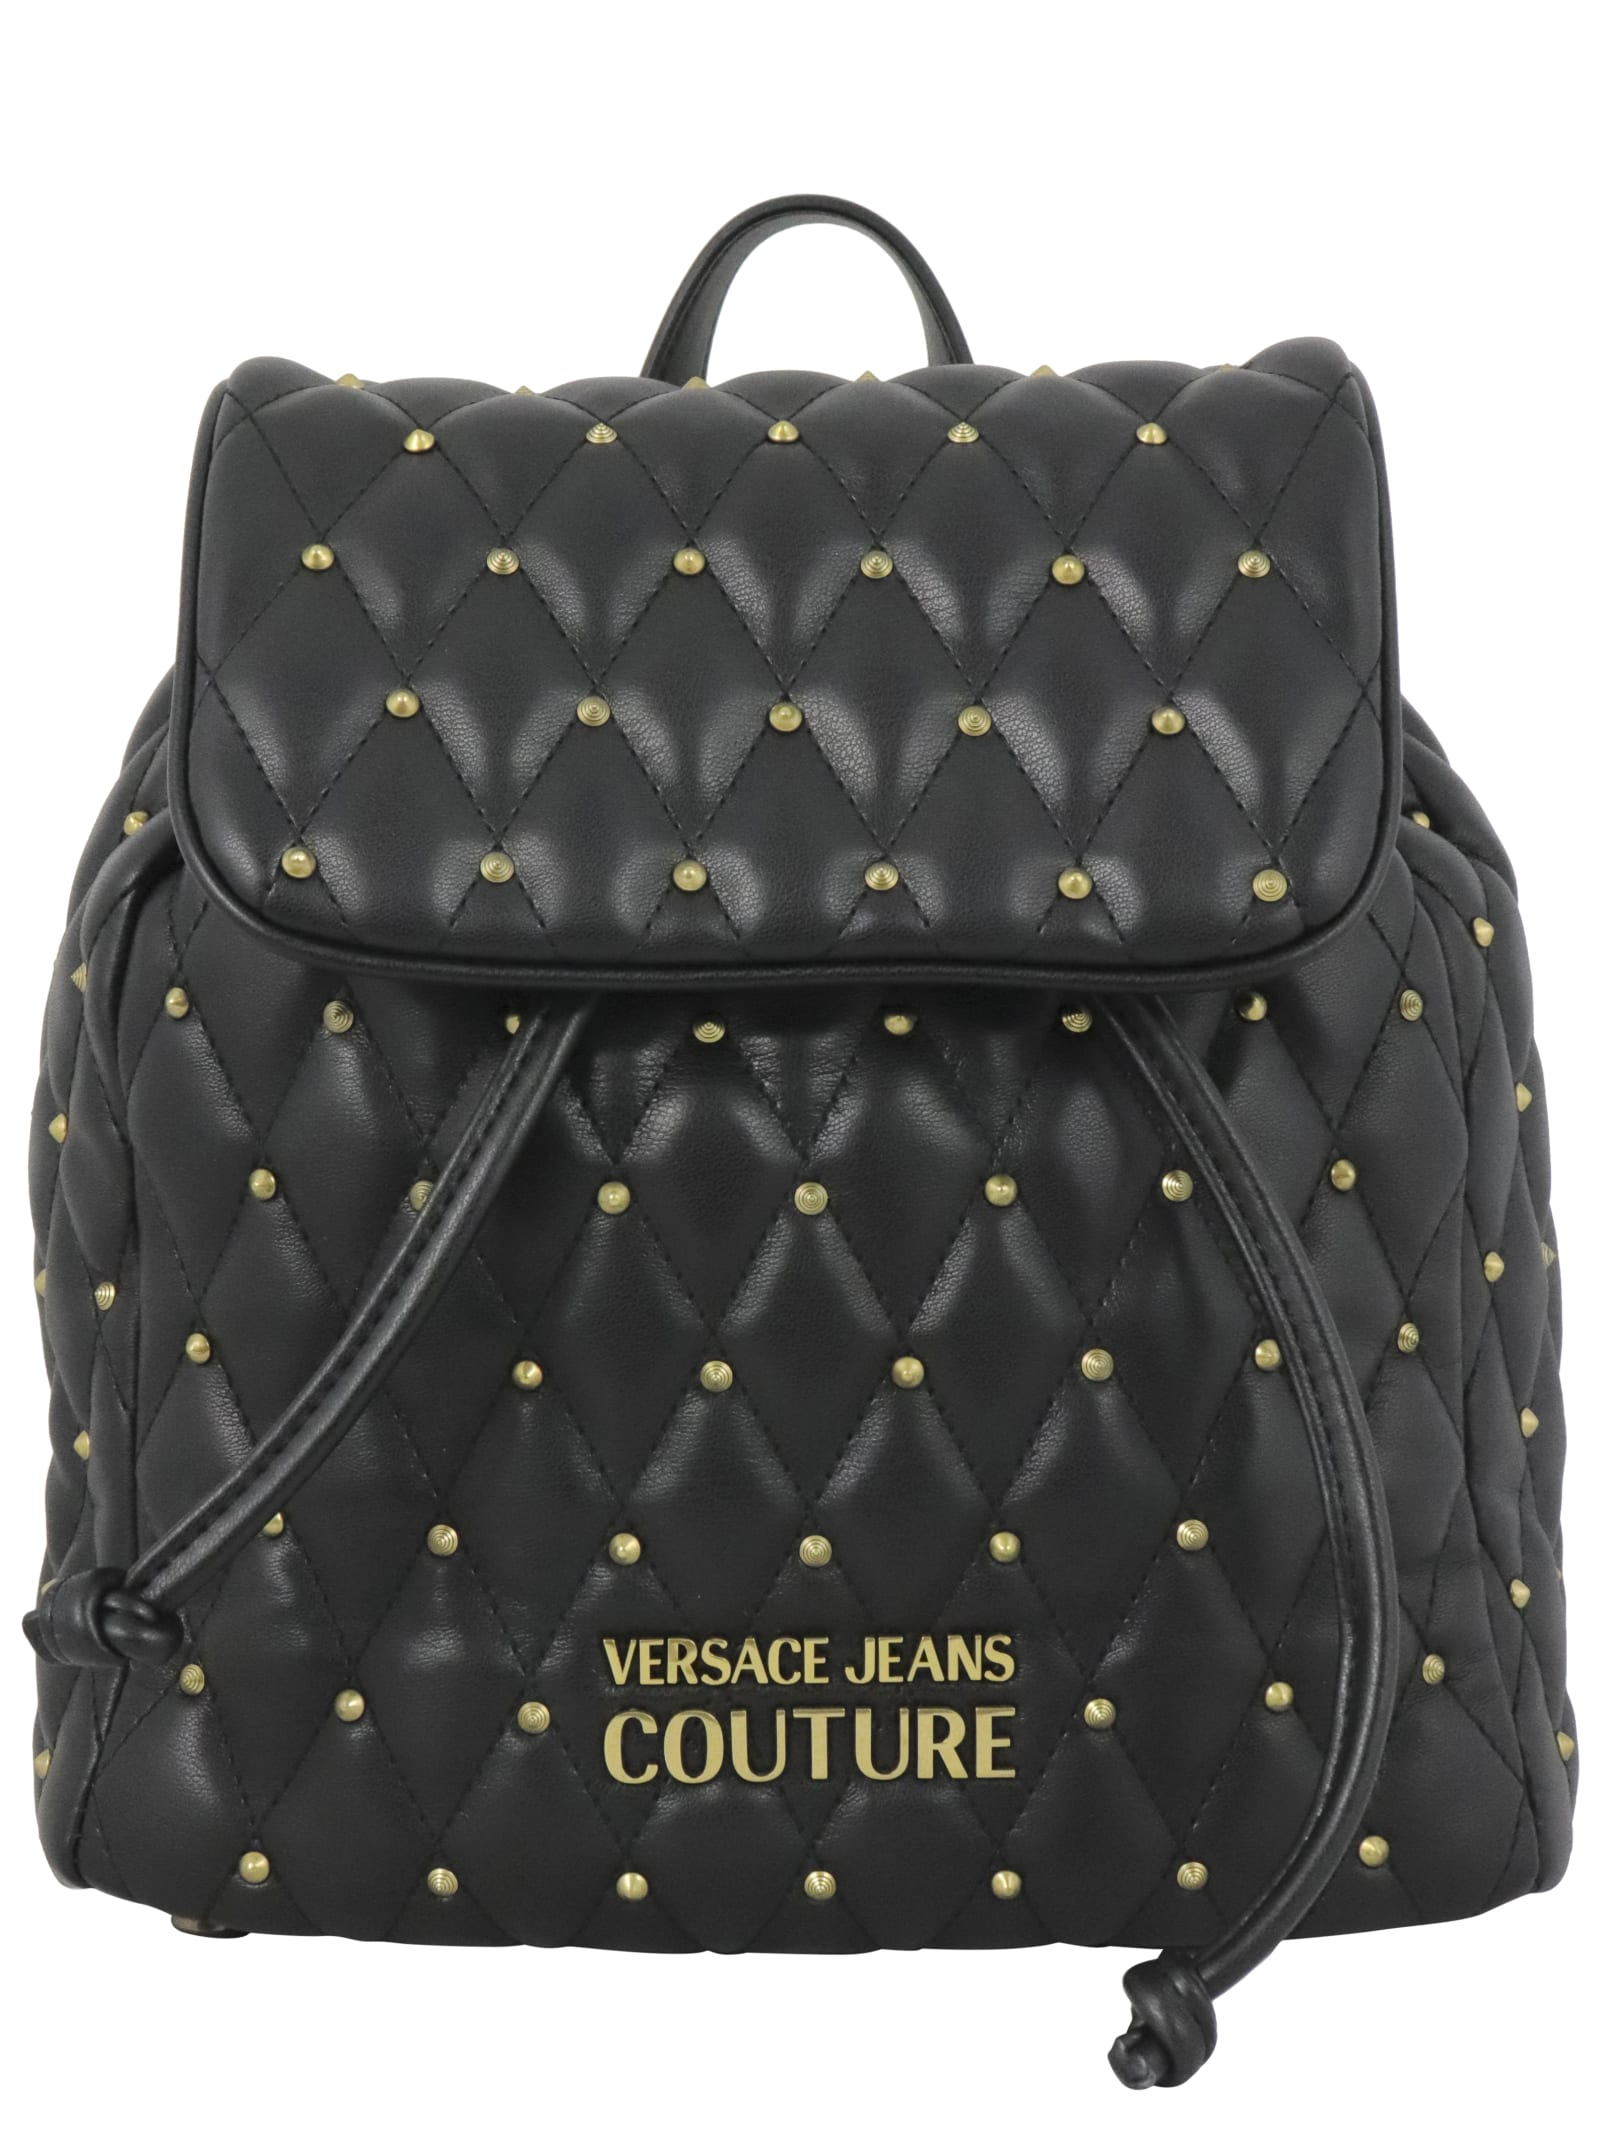 Versace Jeans Couture QUILTED NAPPA PU BACKPACK